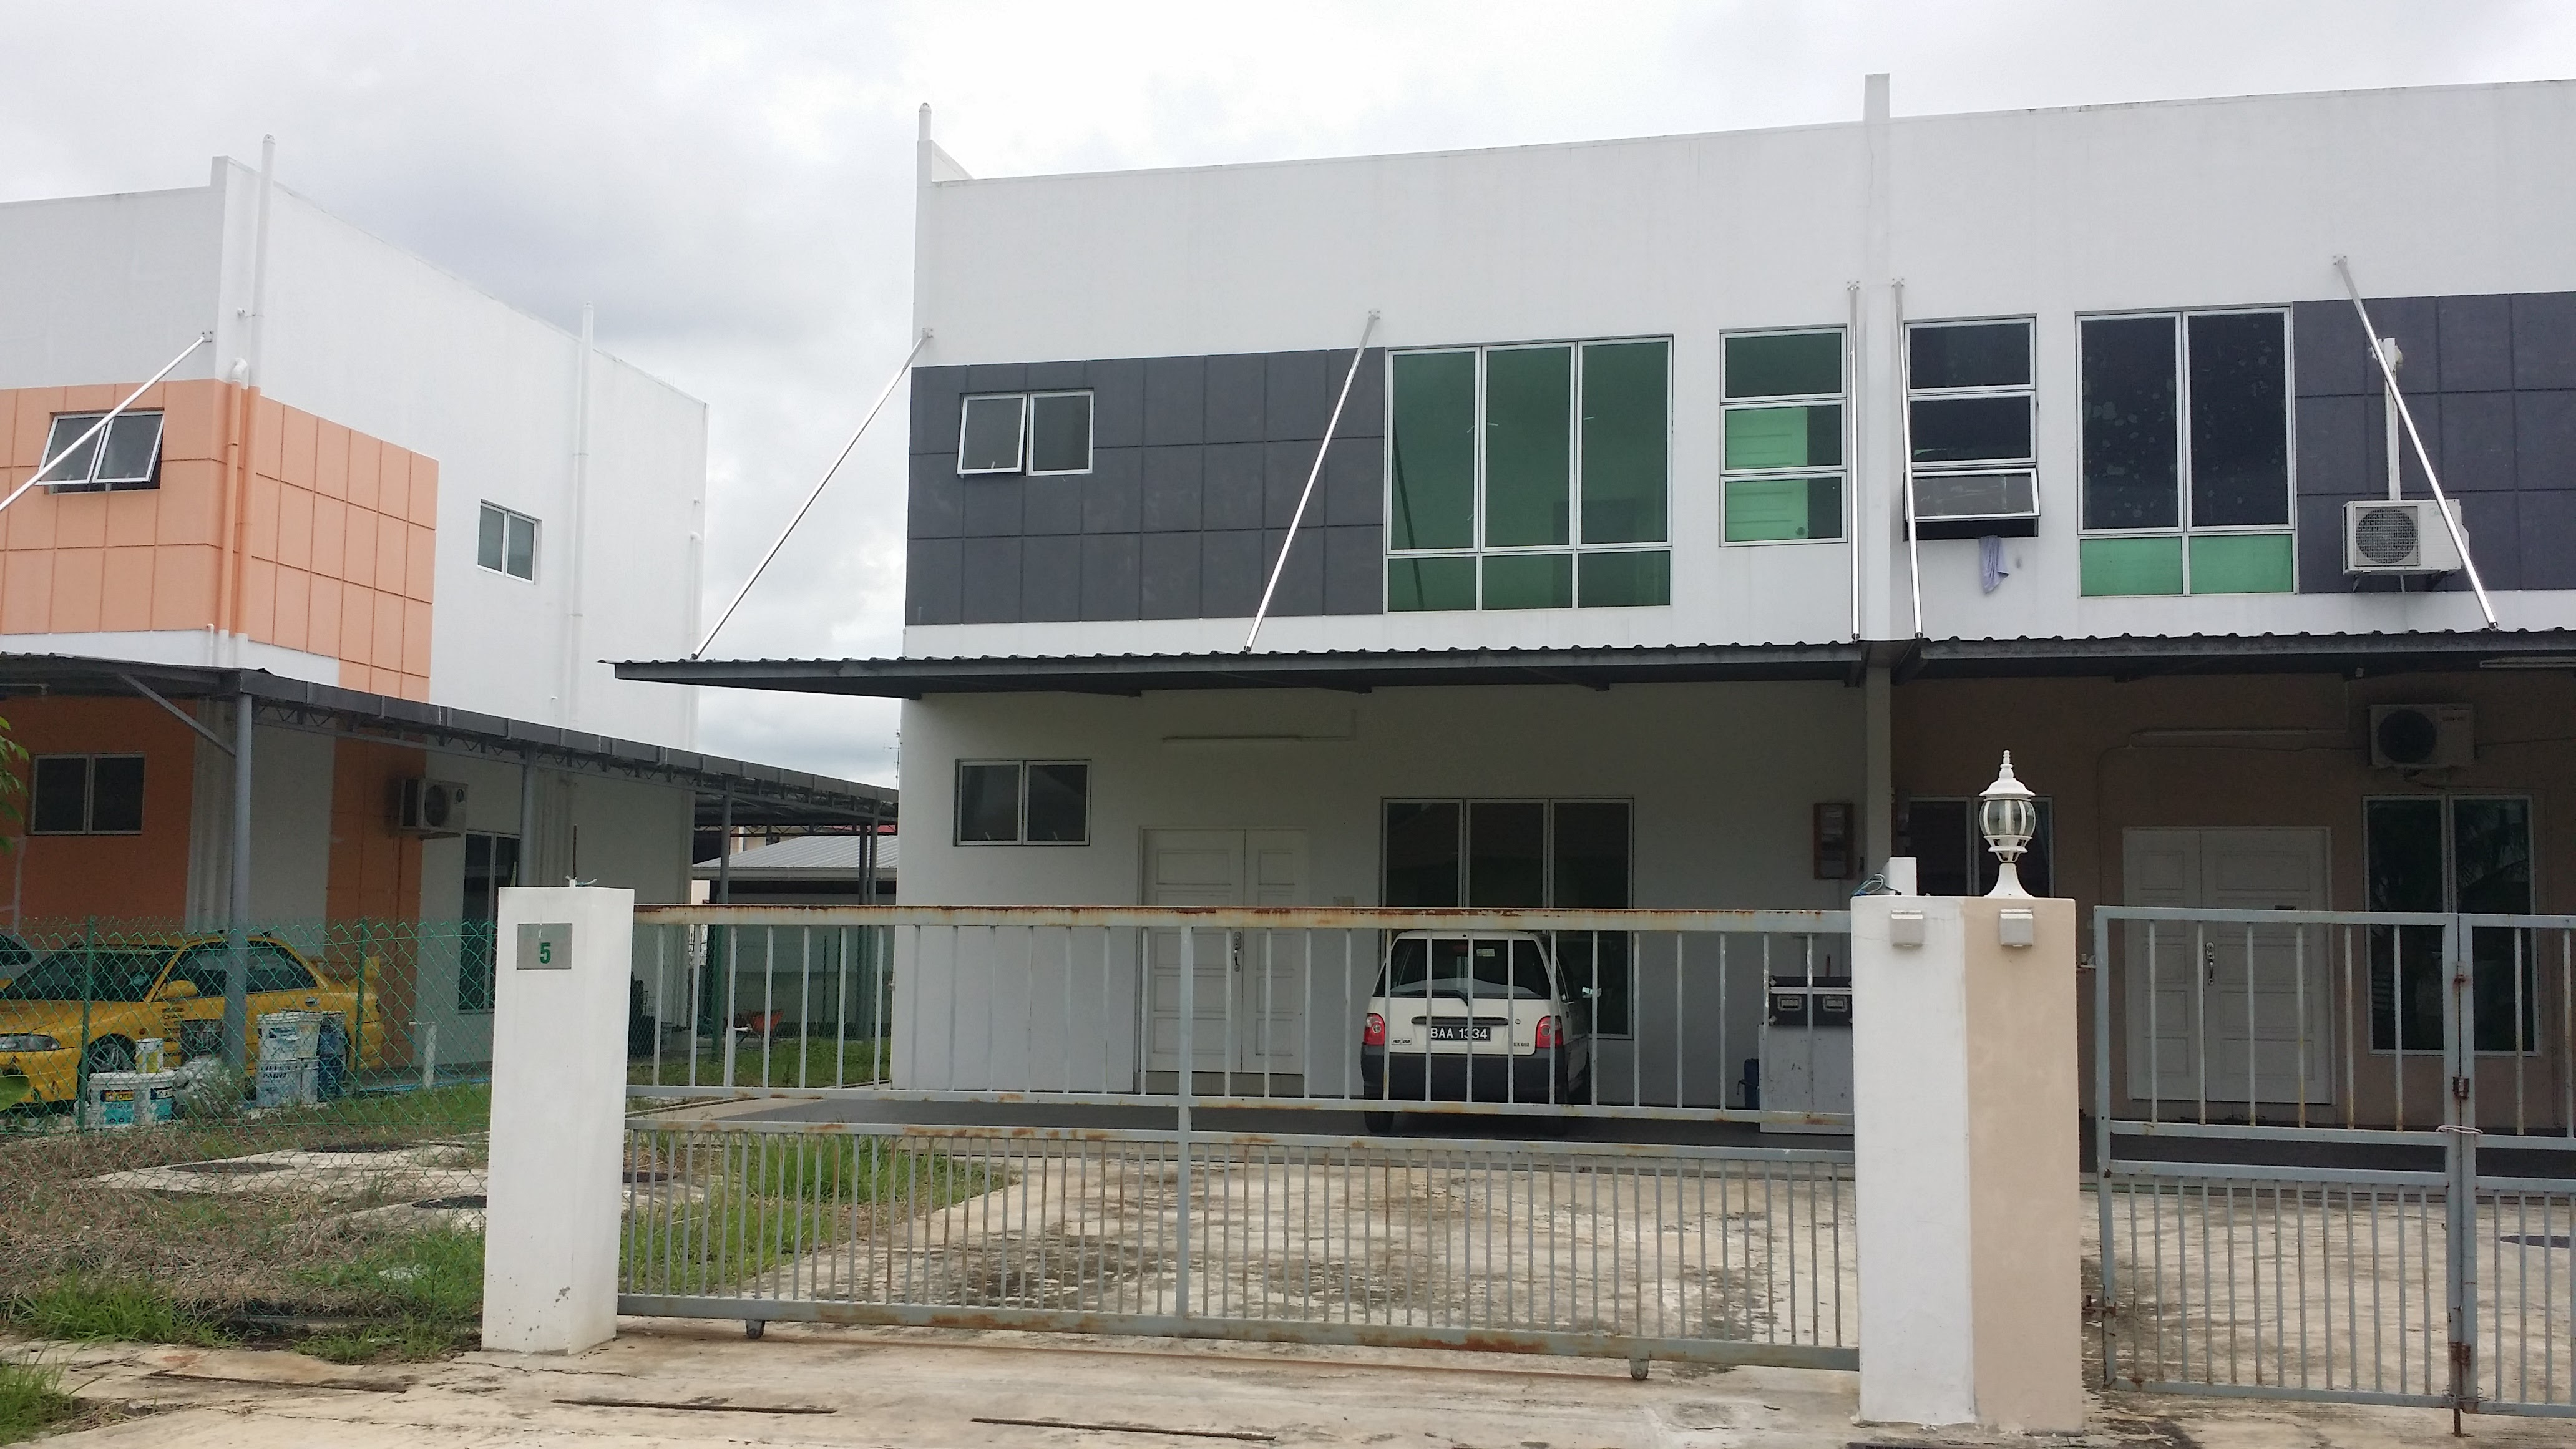 Pan villa properties brand new 2 storey terrace house for 2 storey house for sale